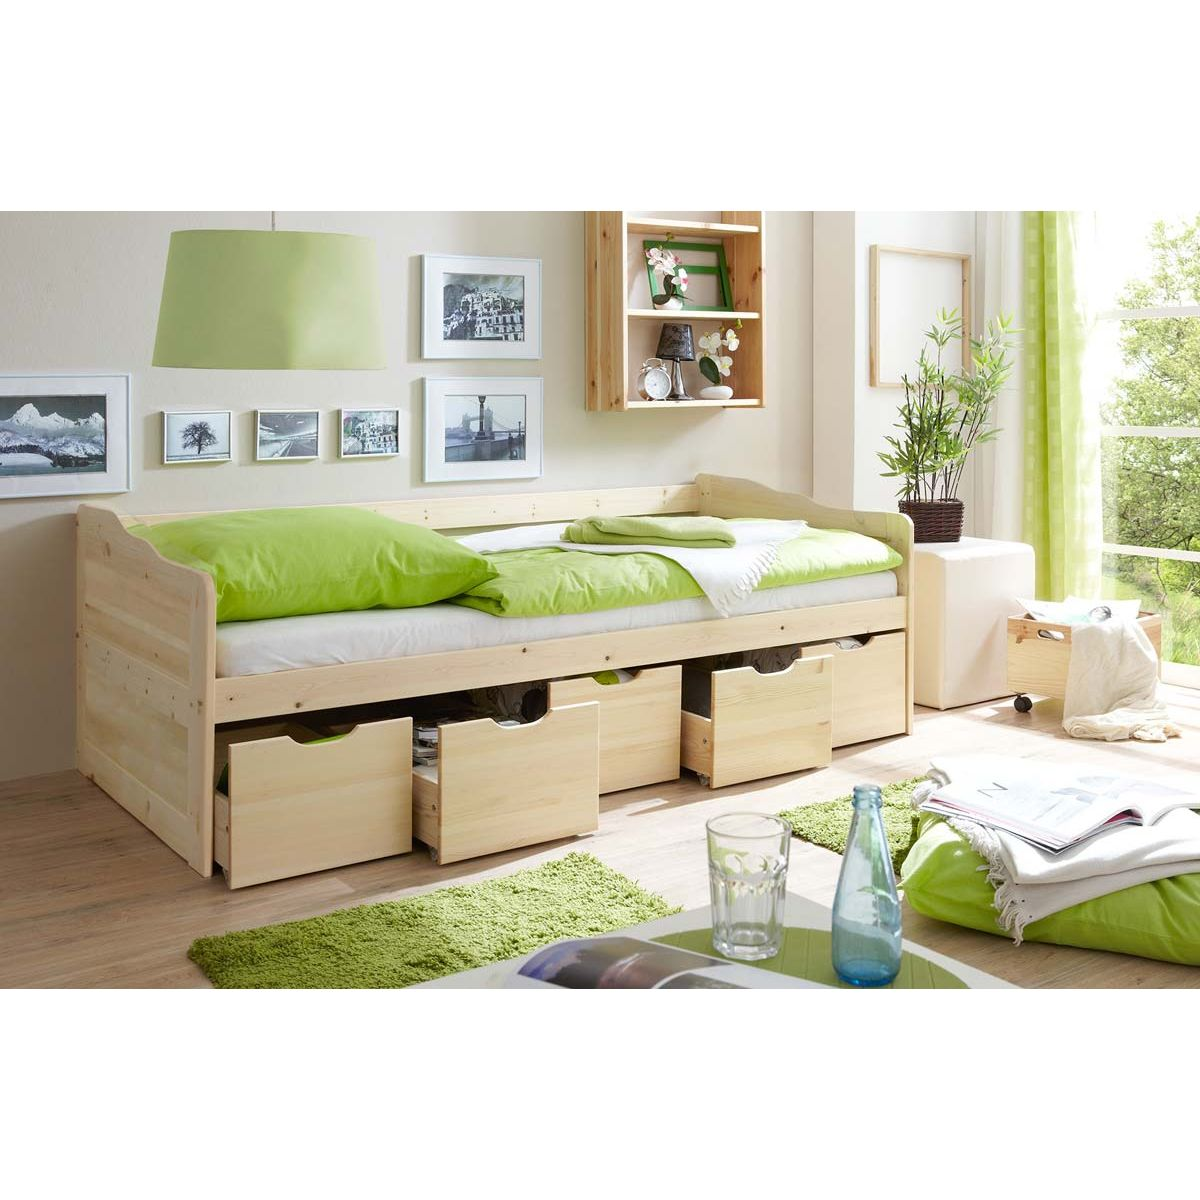 ticaa maria sofabett mit schubkaesten kiefer natur portofrei. Black Bedroom Furniture Sets. Home Design Ideas